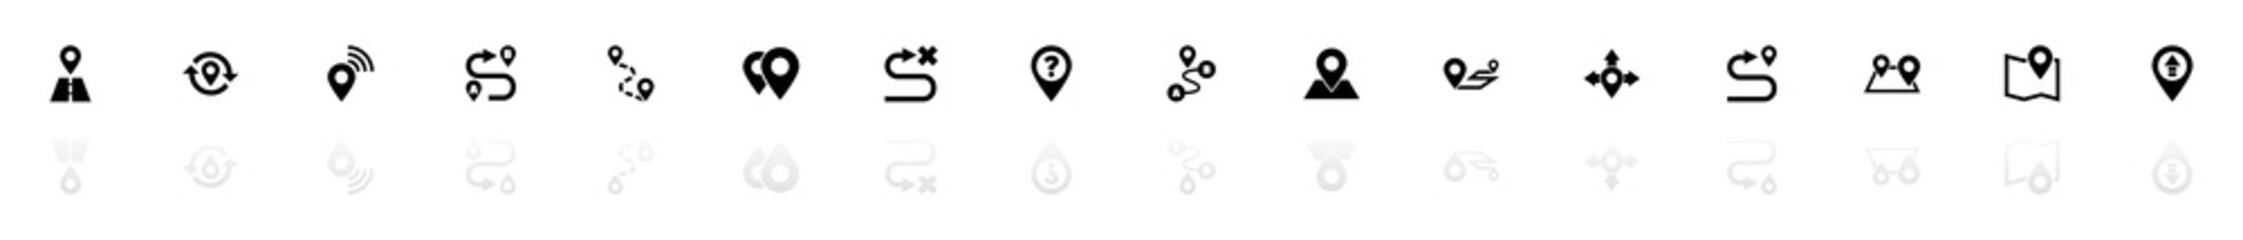 Route icons - Black horizontal Illustration symbol on White Background with a mirror Shadow reflection. Flat Vector Icon.